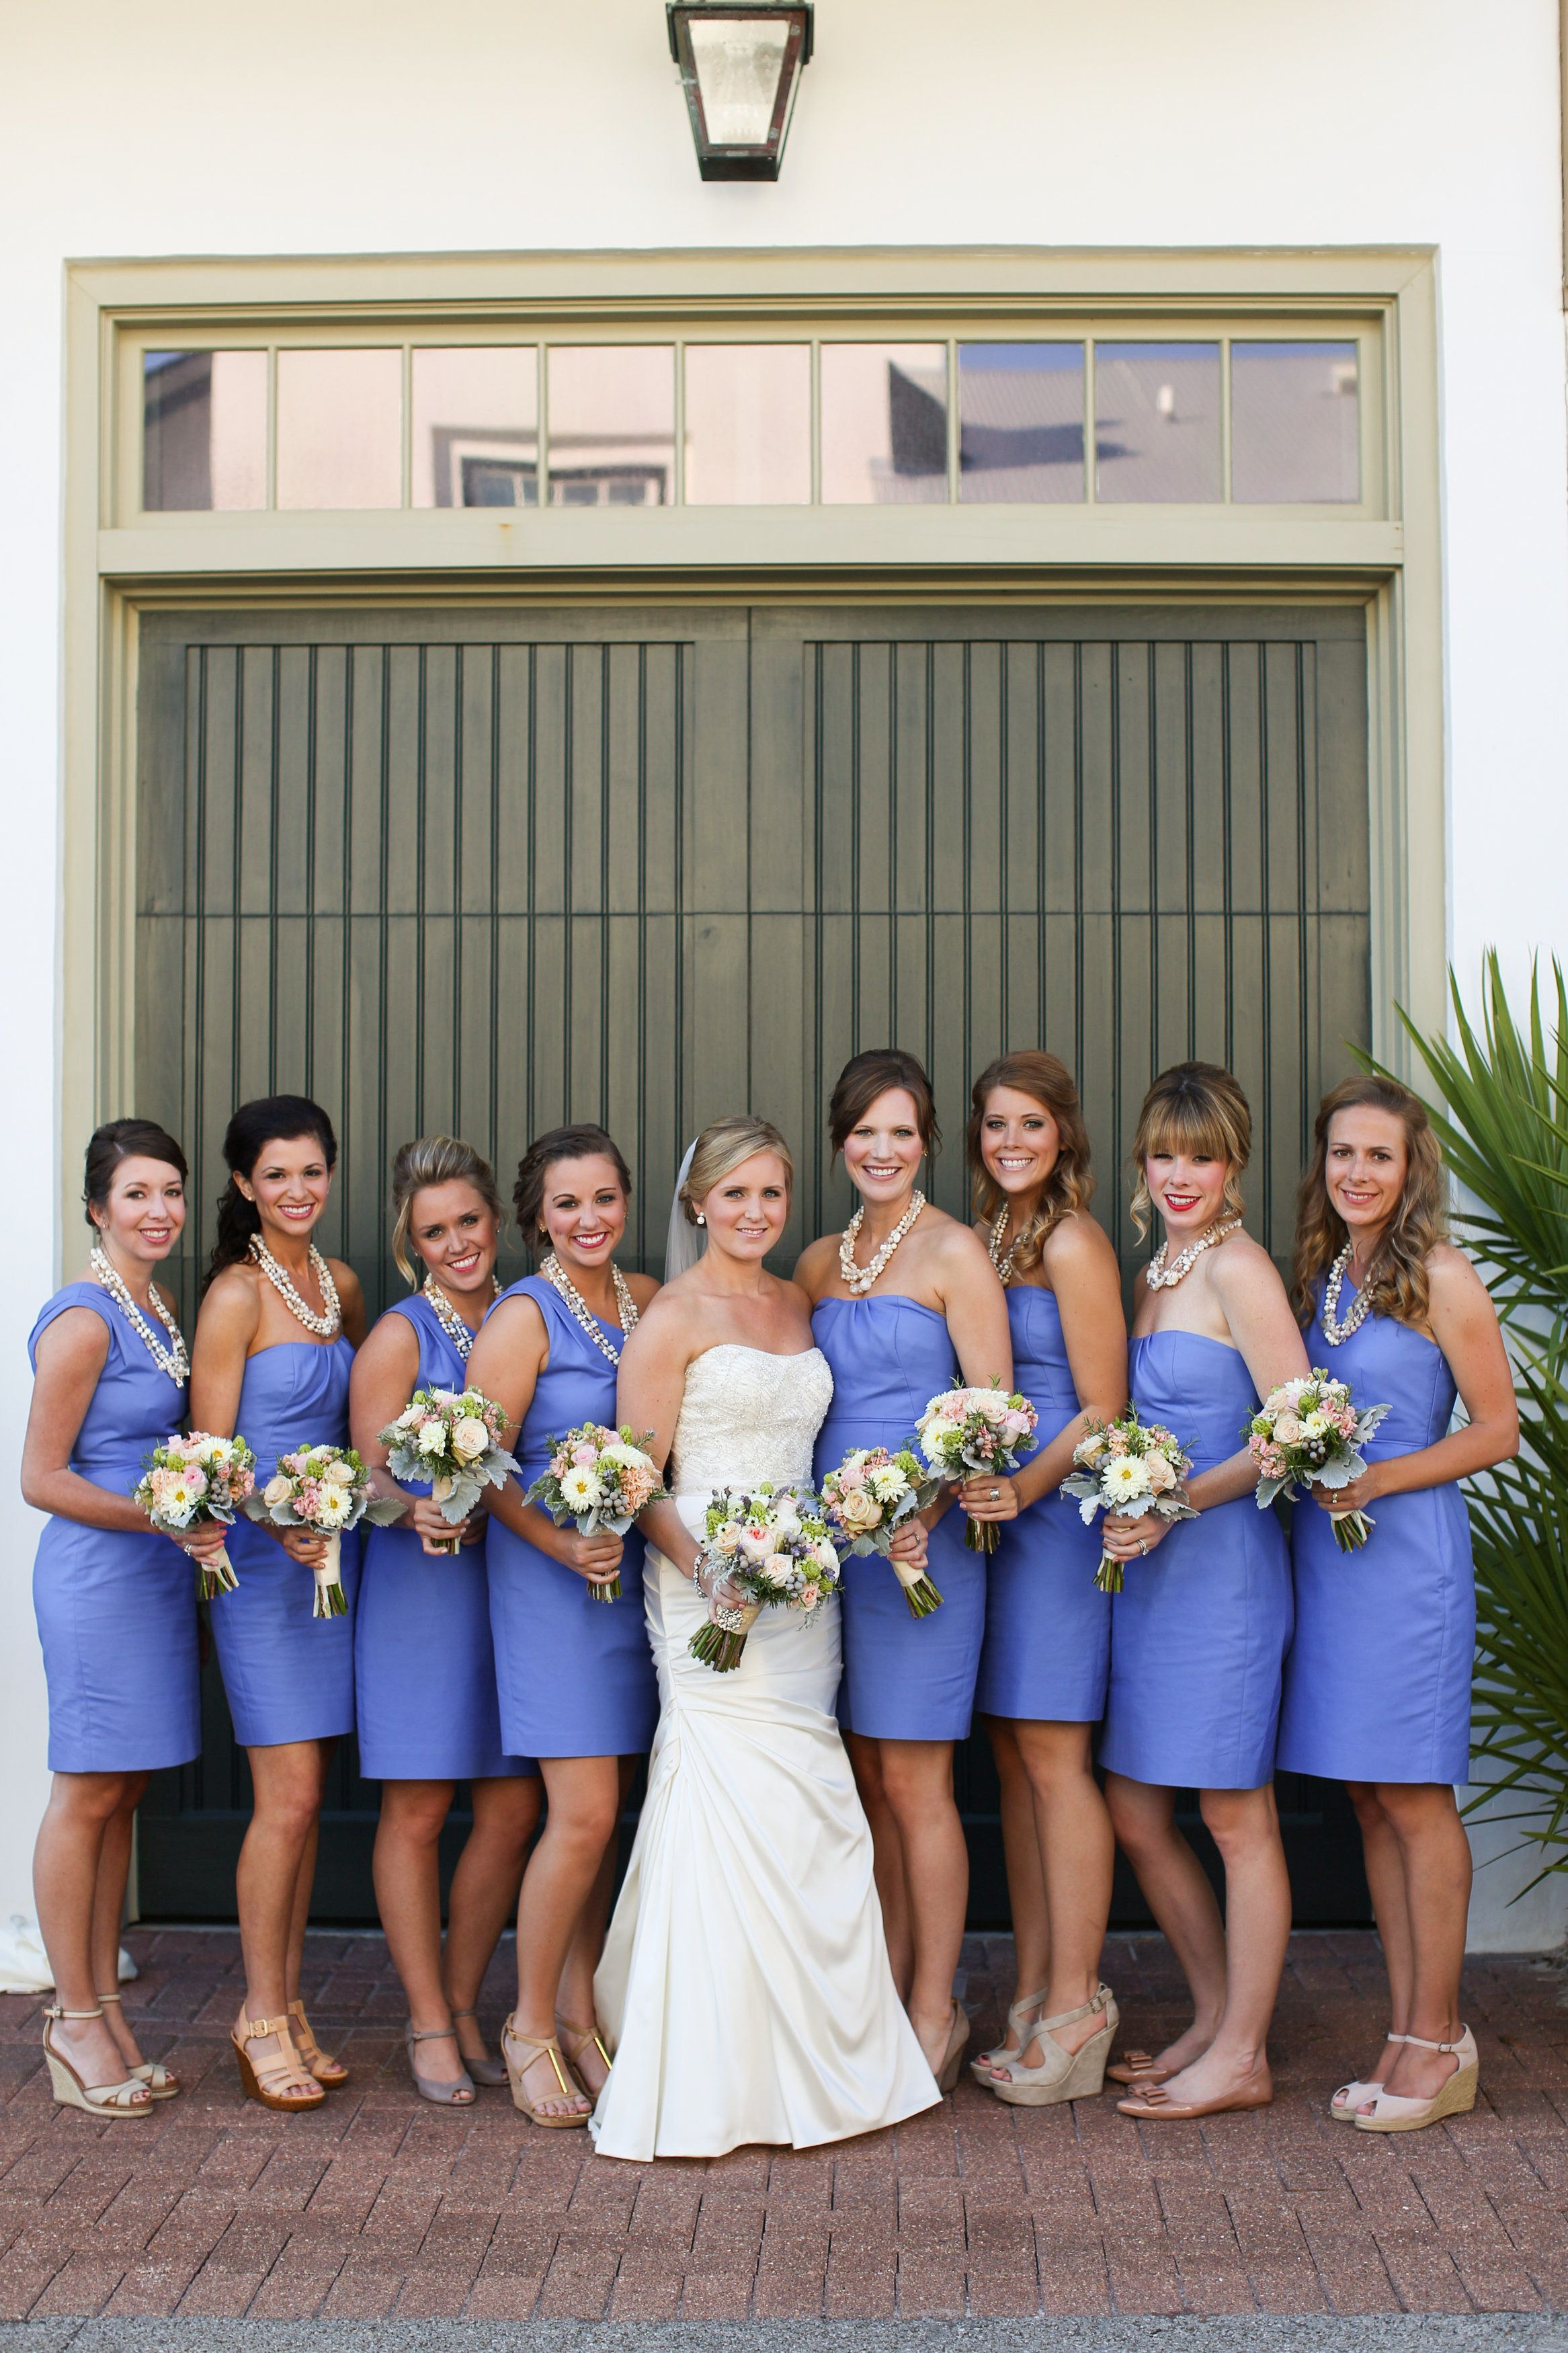 Bridesmaids in the prettiest shade of periwinkle blue photography bridesmaids in the prettiest shade of periwinkle blue photography anna k photography annakphotography ombrellifo Gallery